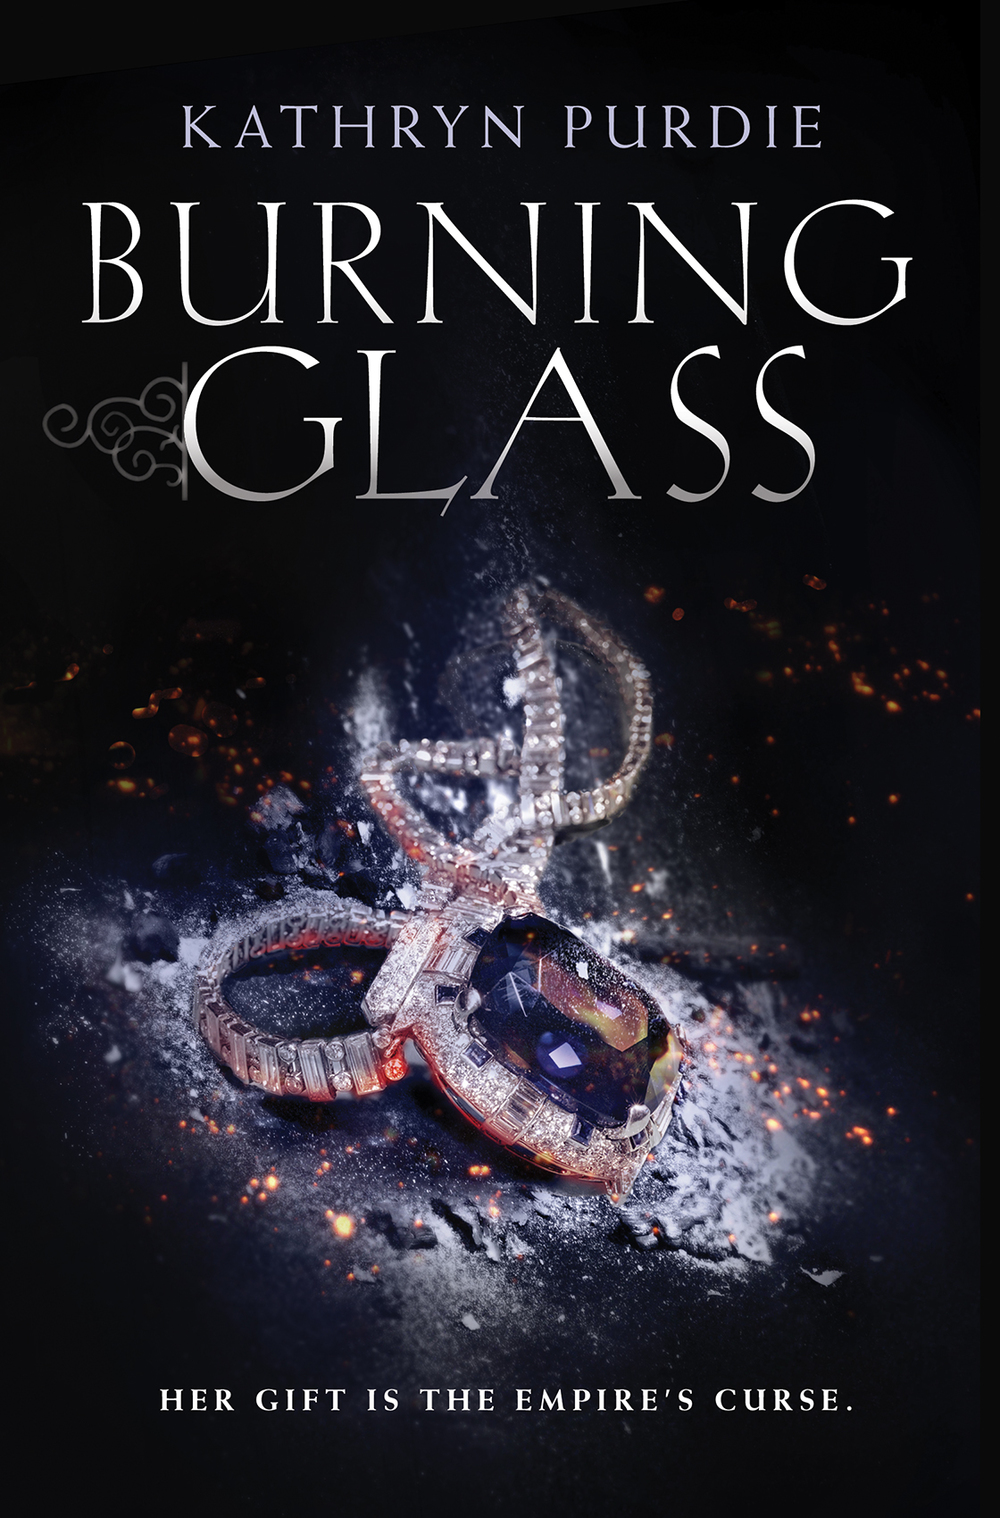 purdie-burning glass.jpg